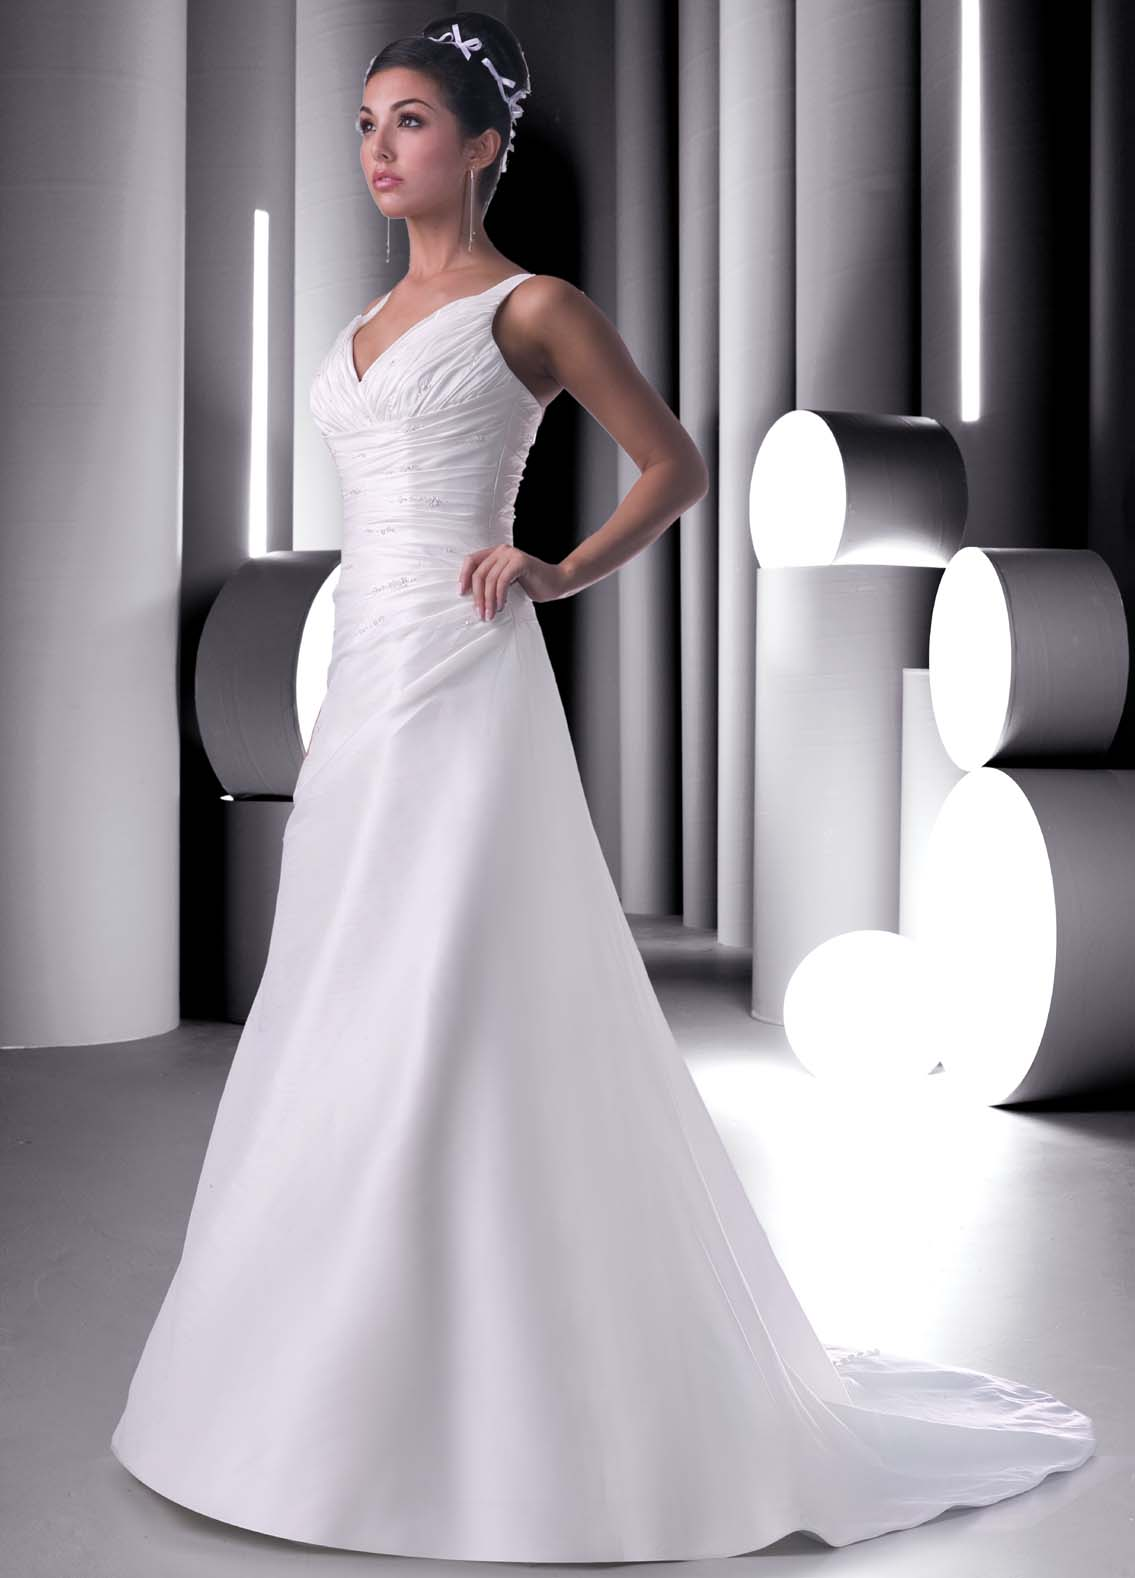 Discount wedding gowns and dresses under 300 for Plain wedding dresses with straps